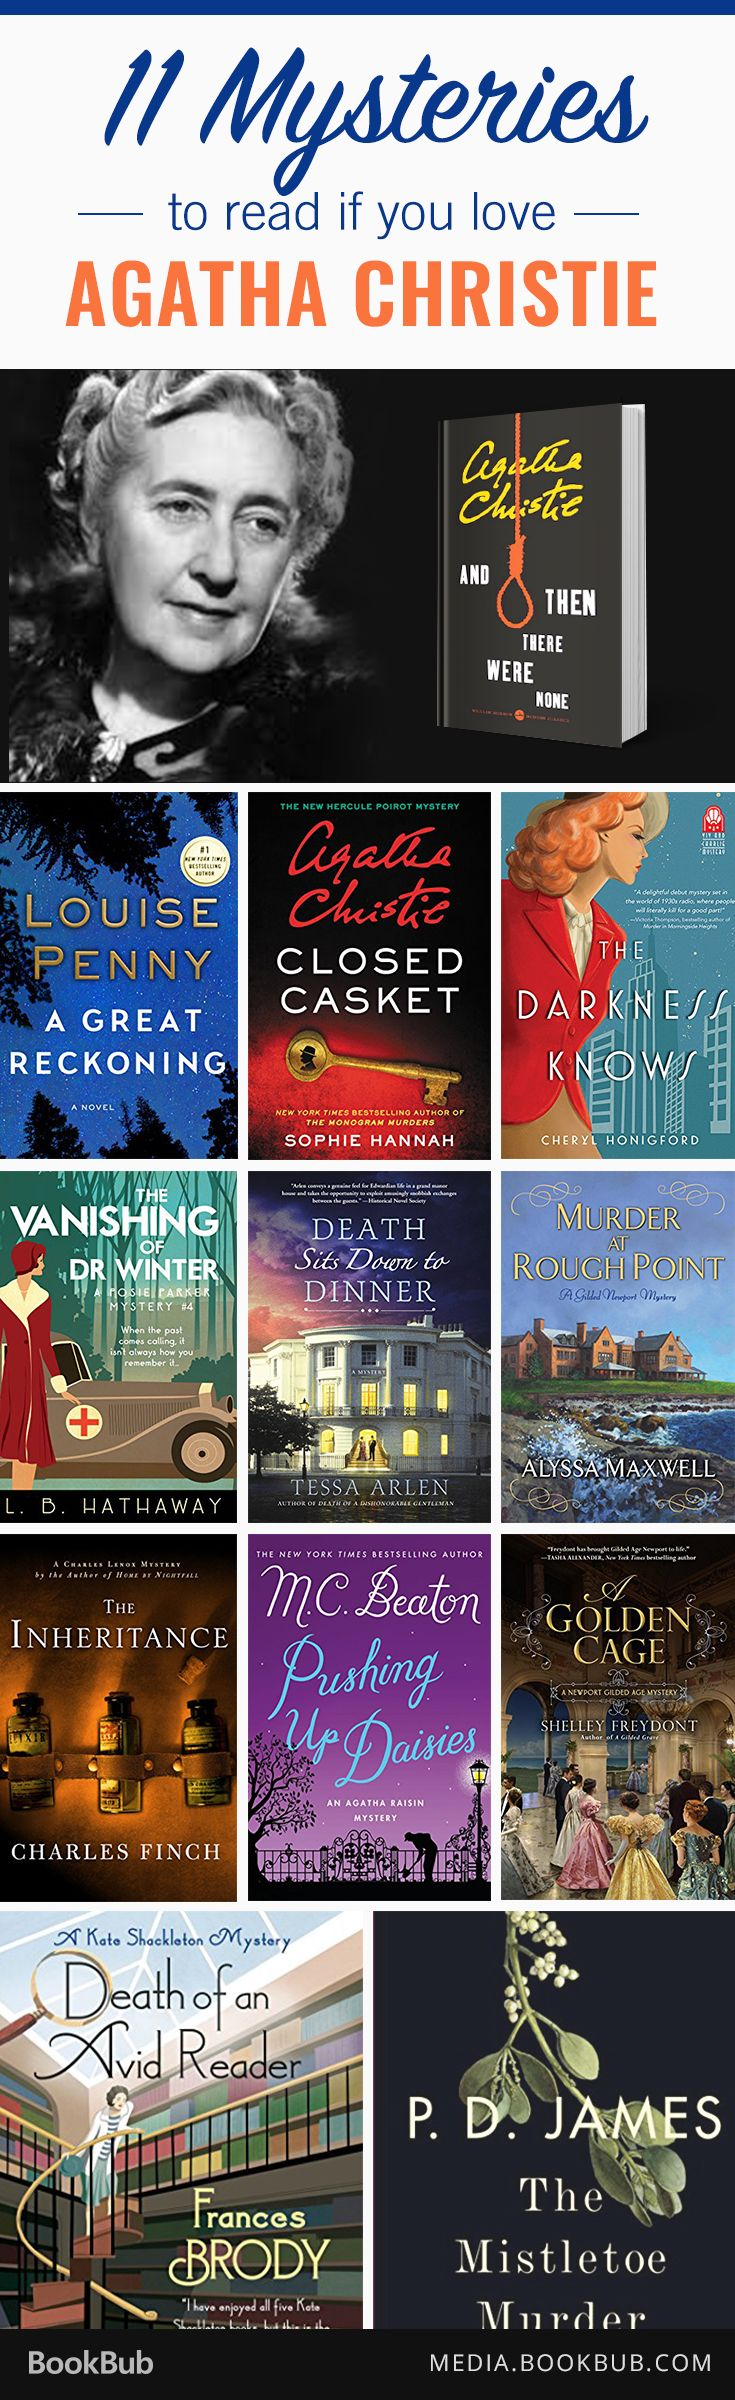 11 Mysteries To Read If You Love Agatha Christie